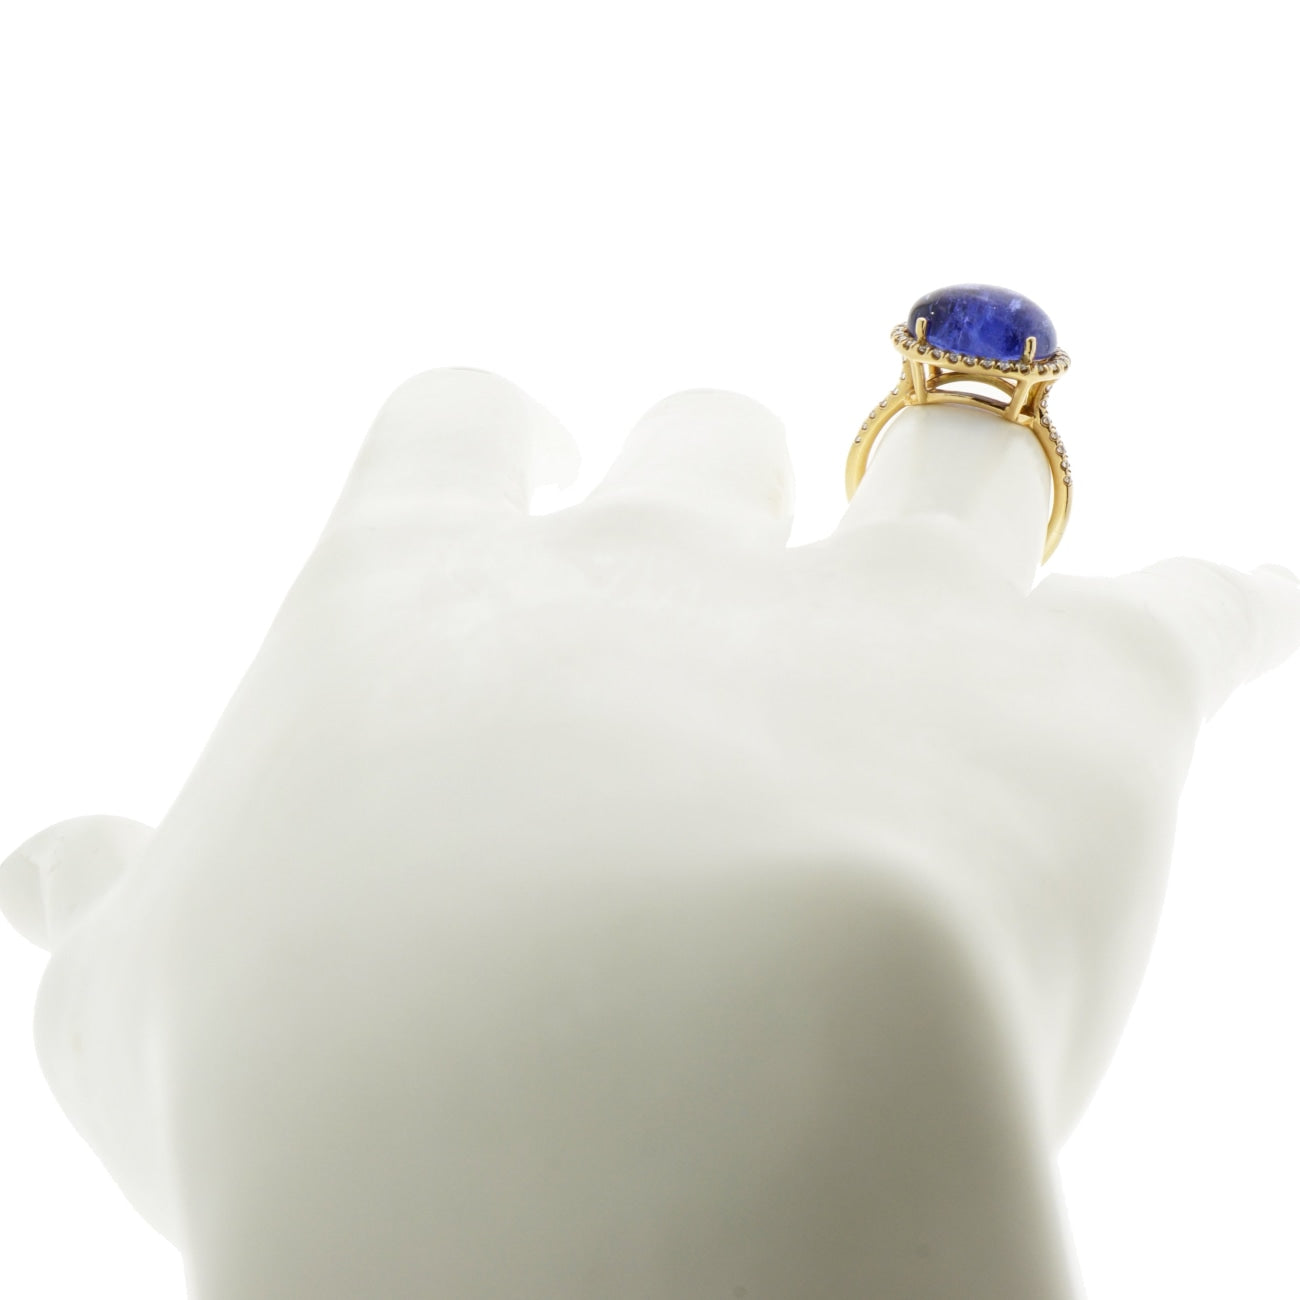 Lauren K Jewelry - Tanzanite & Diamond Rose Gold Ring | Manfredi Jewels